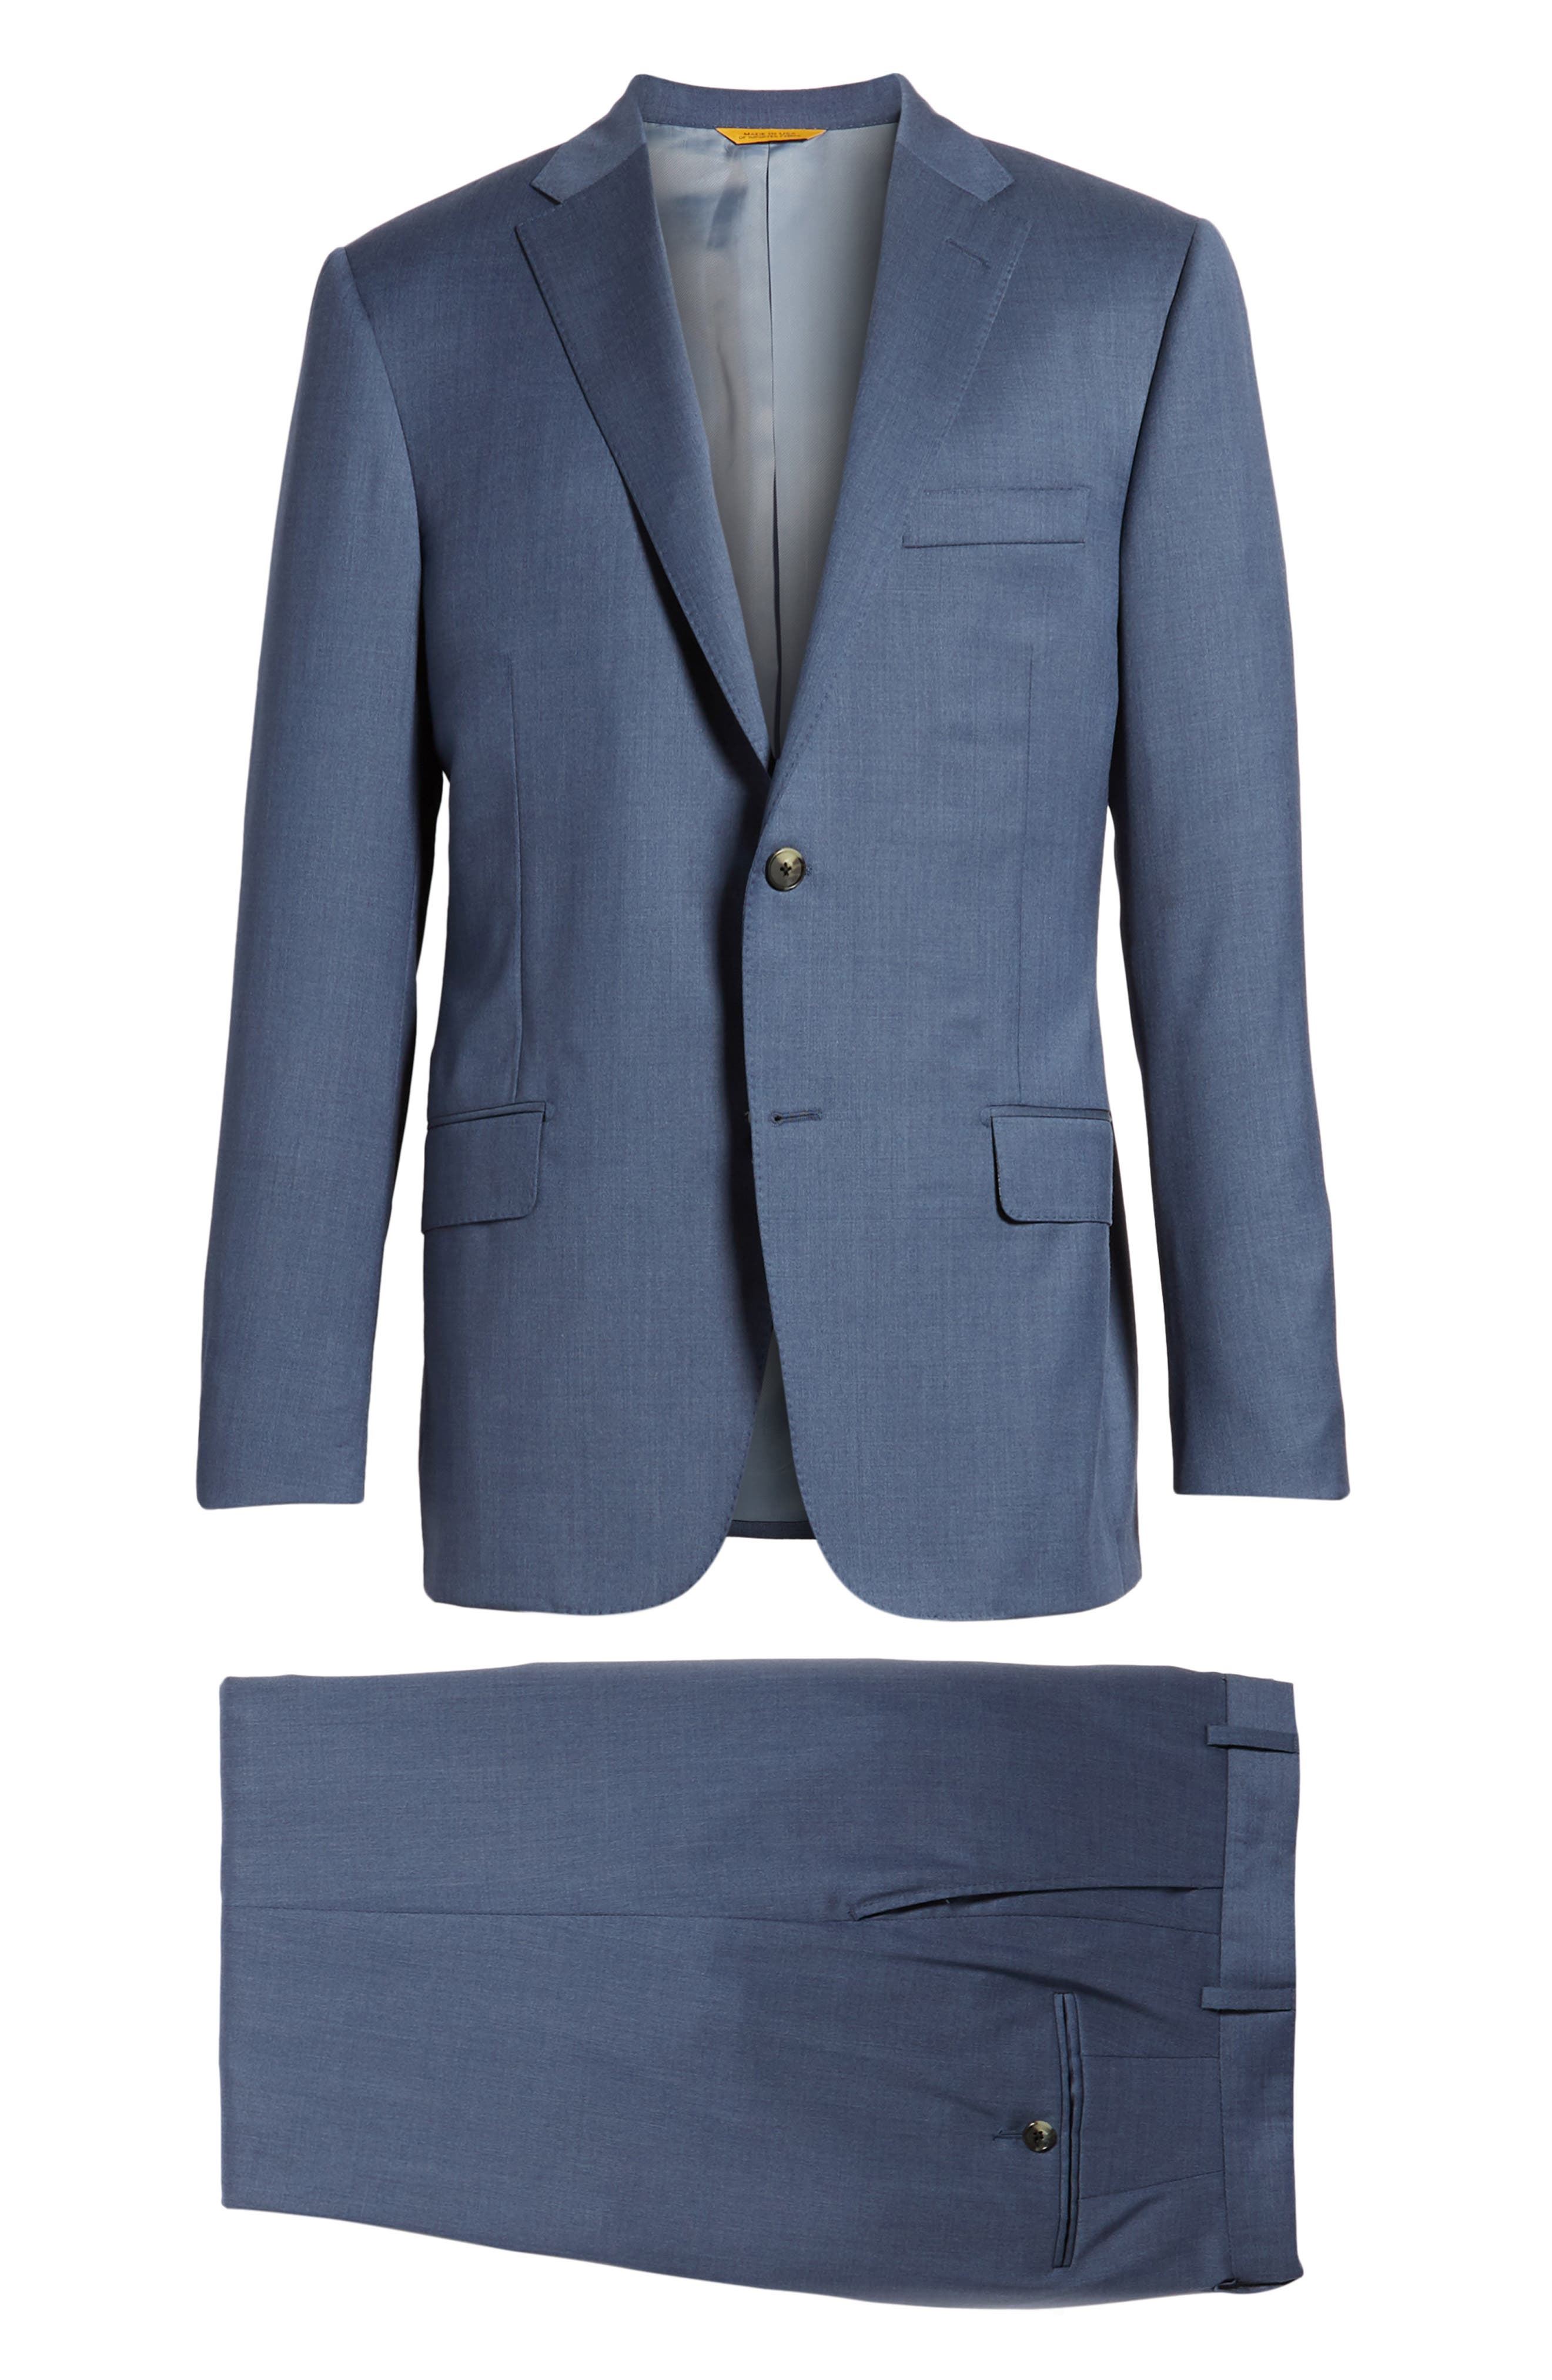 Classic B Fit Solid Wool Suit,                             Alternate thumbnail 8, color,                             499